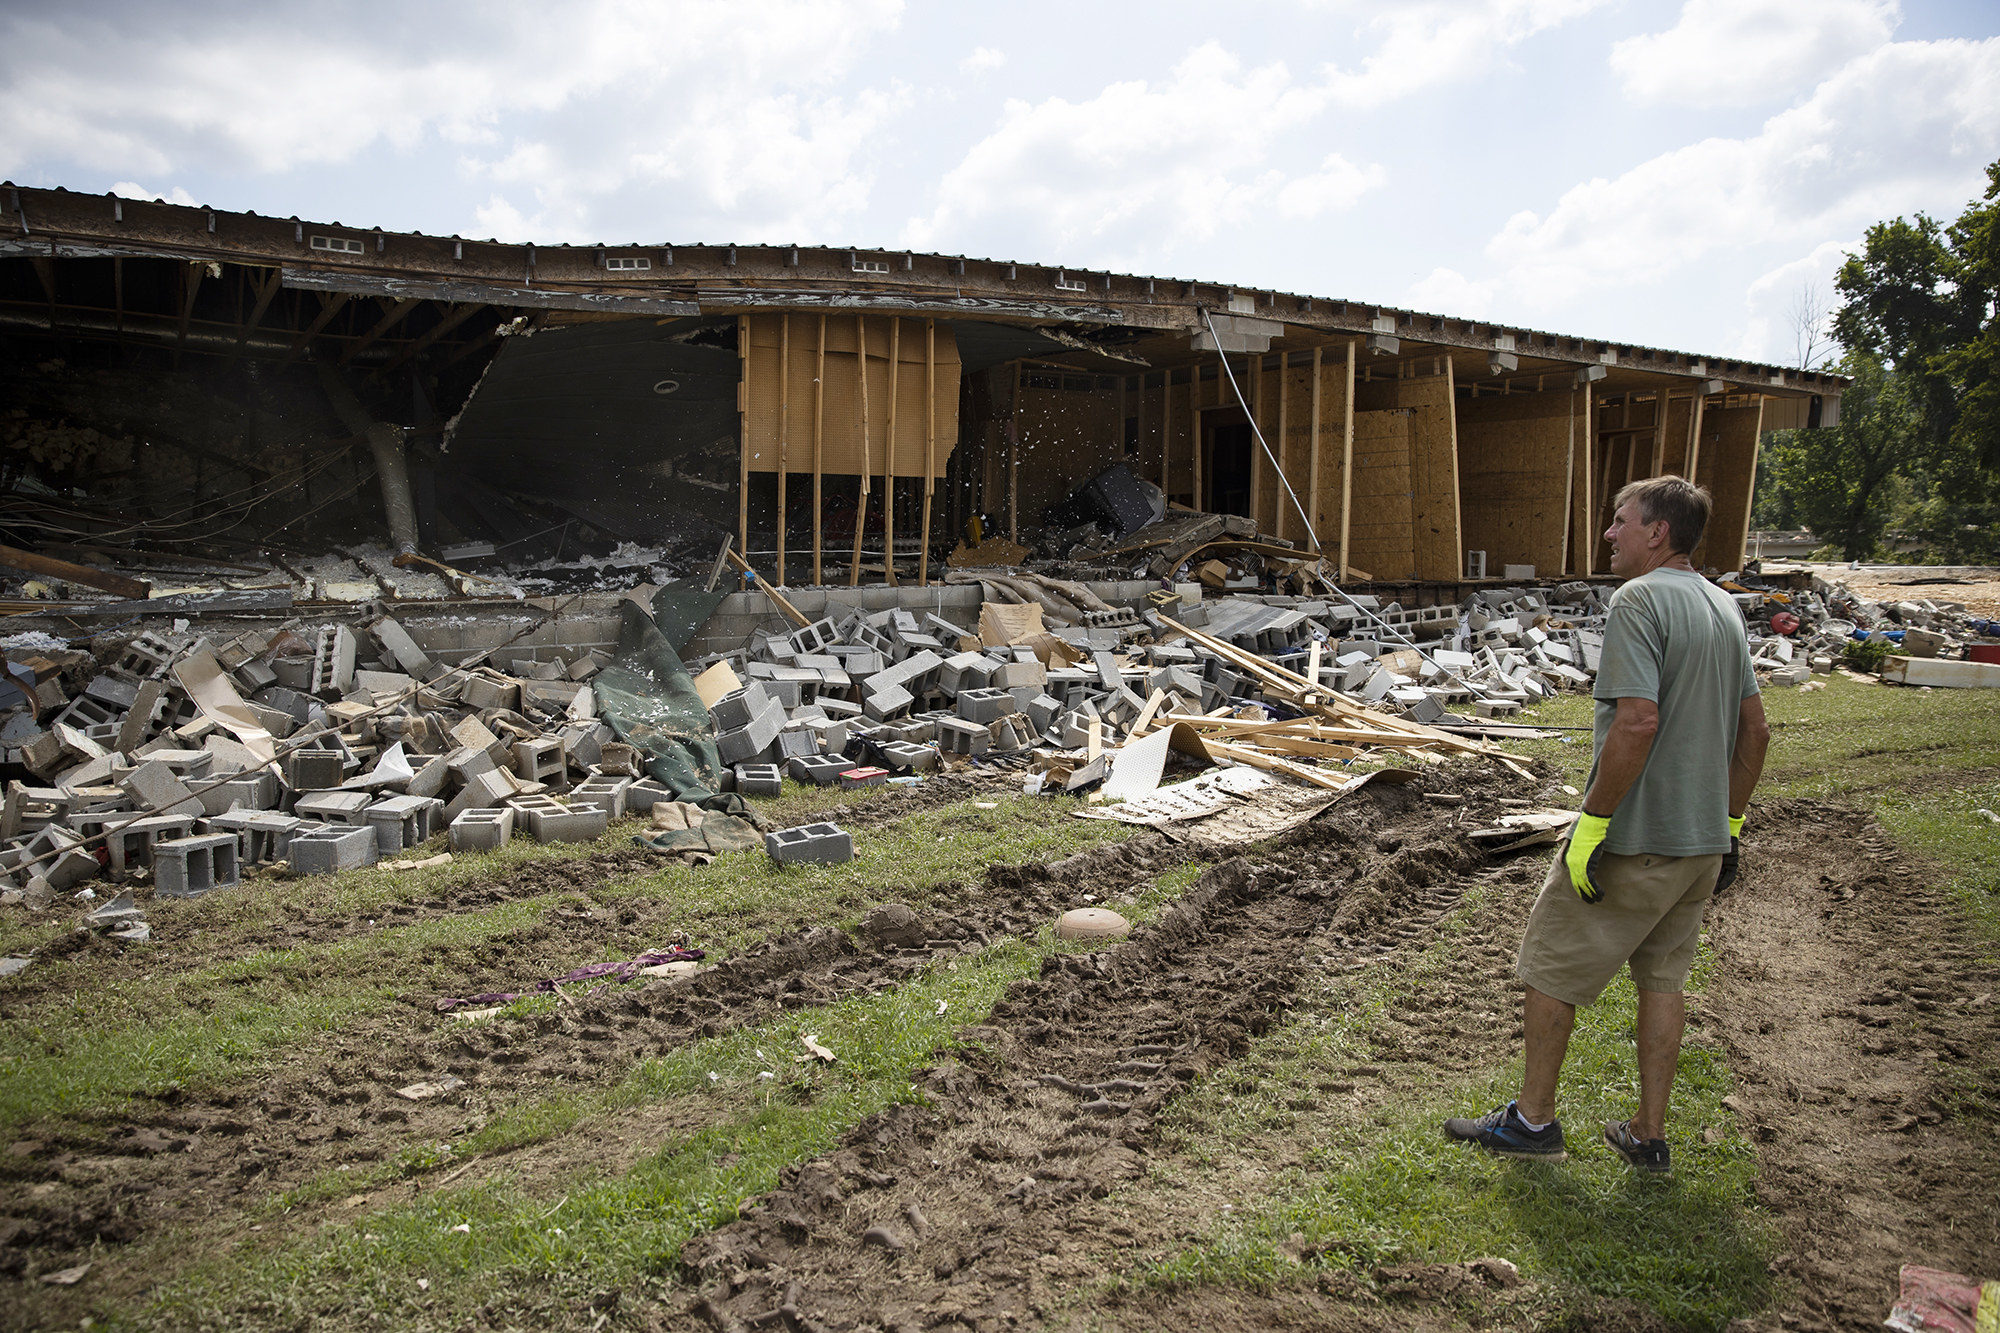 A man standing in a muddy field looks off-camera at the wreckage of a building